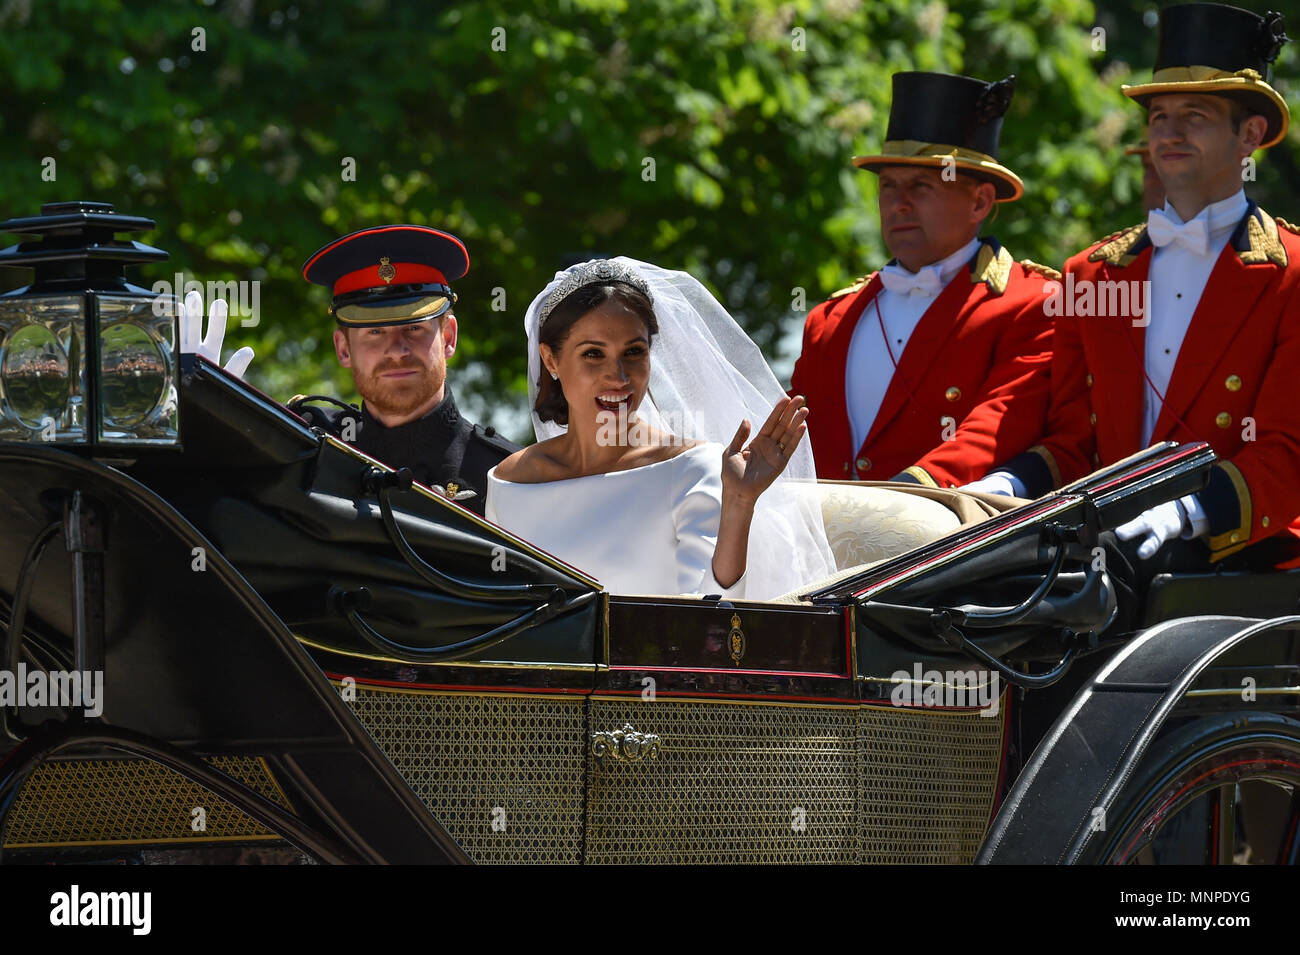 Windsor, United Kingdom. 19th May 2018. The wedding of Prince Harry and Meghan Markle at Windsor Castle in England. The groom, Prince Harry, is a member of the British royal family; the bride, Meghan Markle, is an American actress. Credit: Peter Manning/Alamy Live News - Stock Image